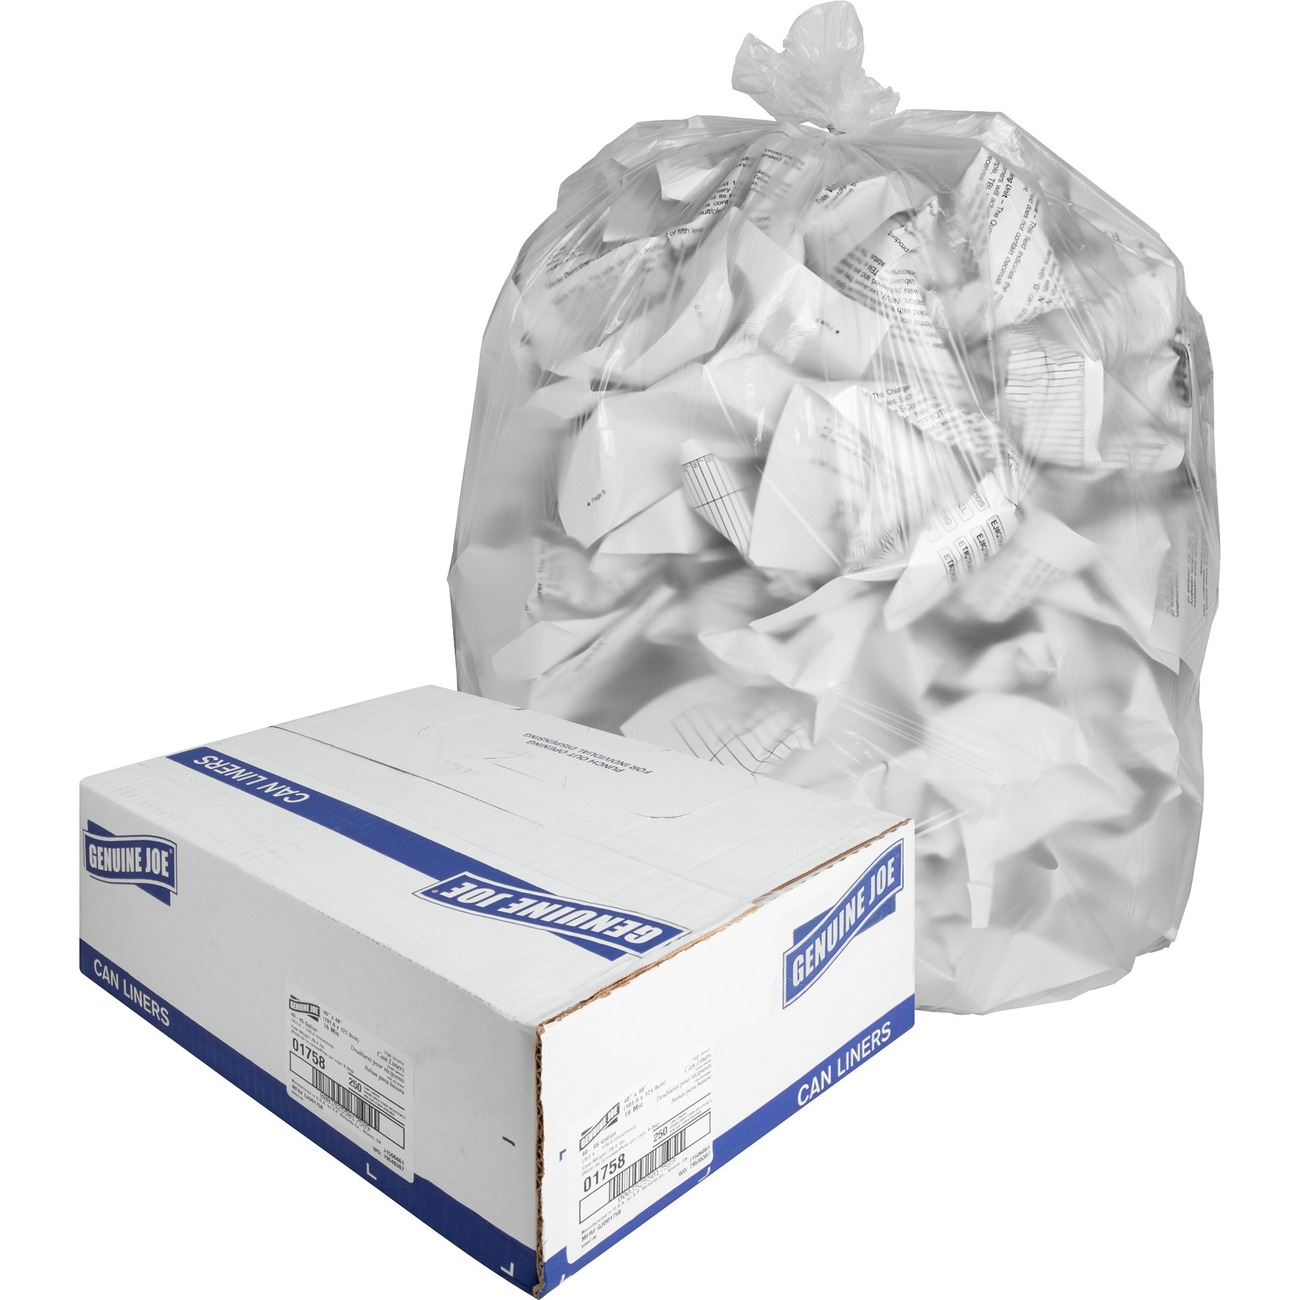 "33 Gal Webster Trash Bag 33/"" X 40/"" 0.43 Mil Thickness High 11 Micron"